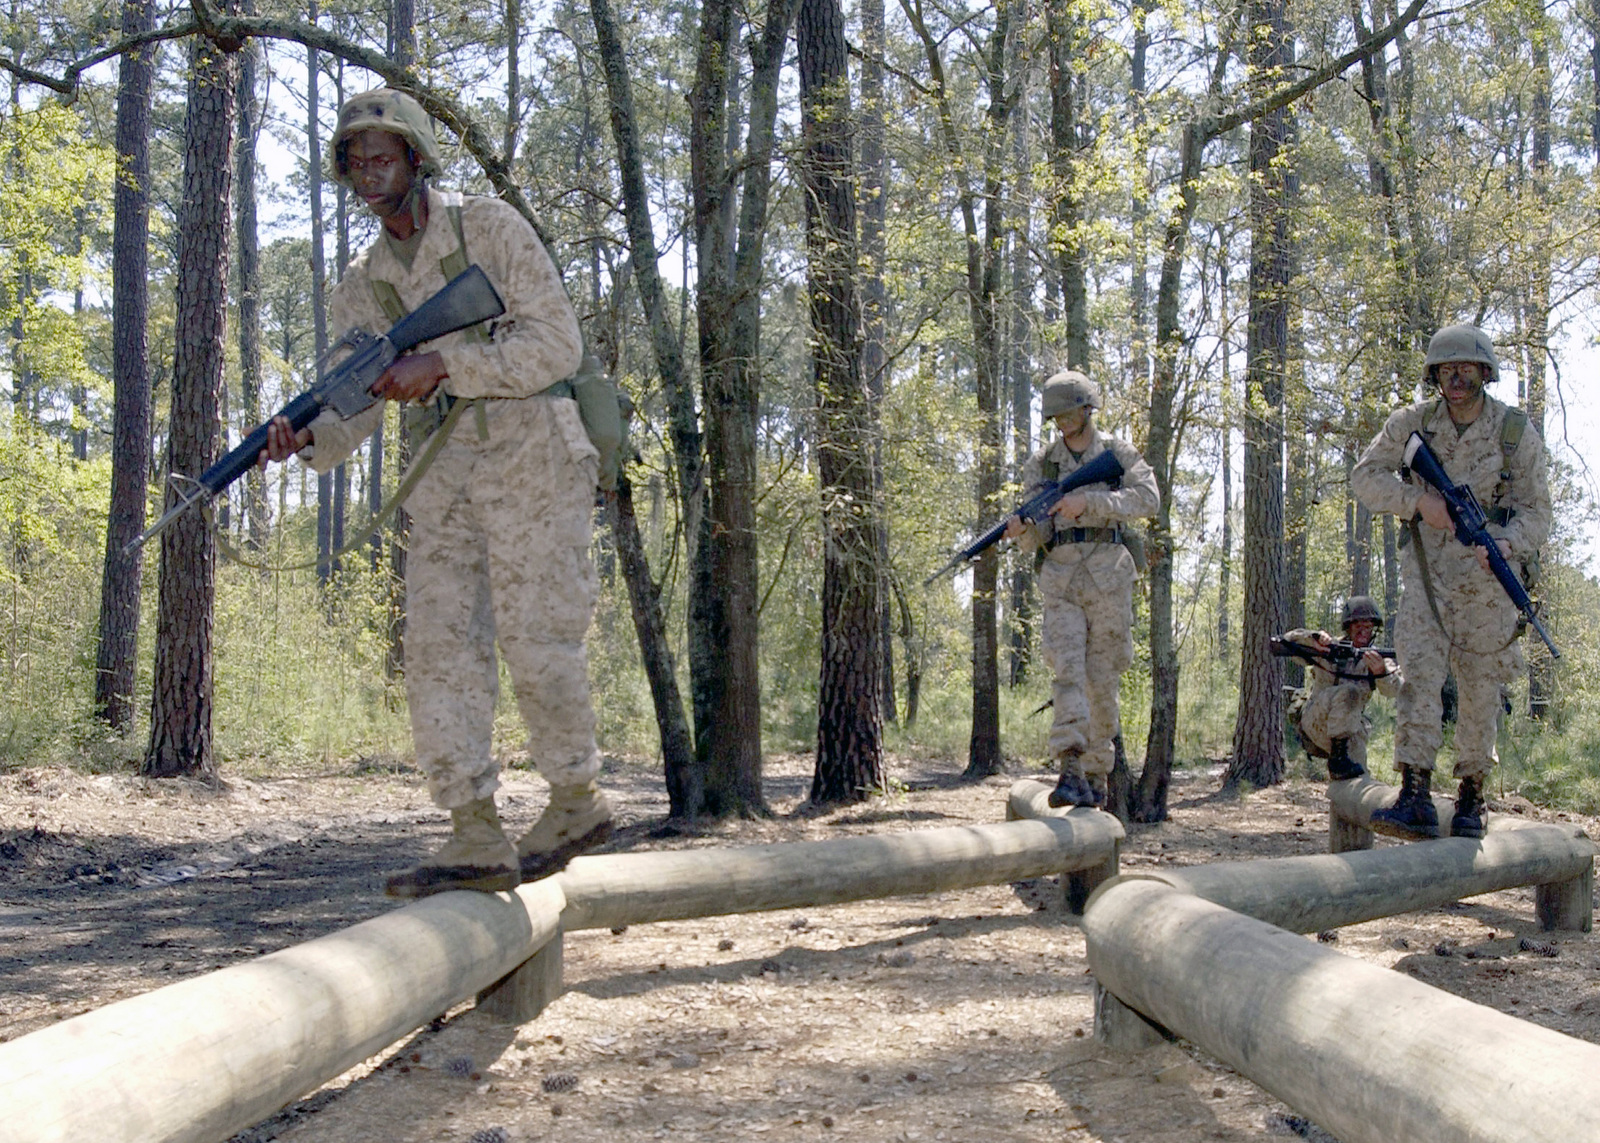 US Marine Corps (USMC) recruits assigned to India Company, Platoon 3024, 3rd Recruit Training Battalion (RTBN), carry their 5.56 mm M16A2 rifles as they navigate an obstacle within the final exercise of recruit training course, at Marine Corps Recruit Depot (MCRD) Parris Island, South Carolina (SC)